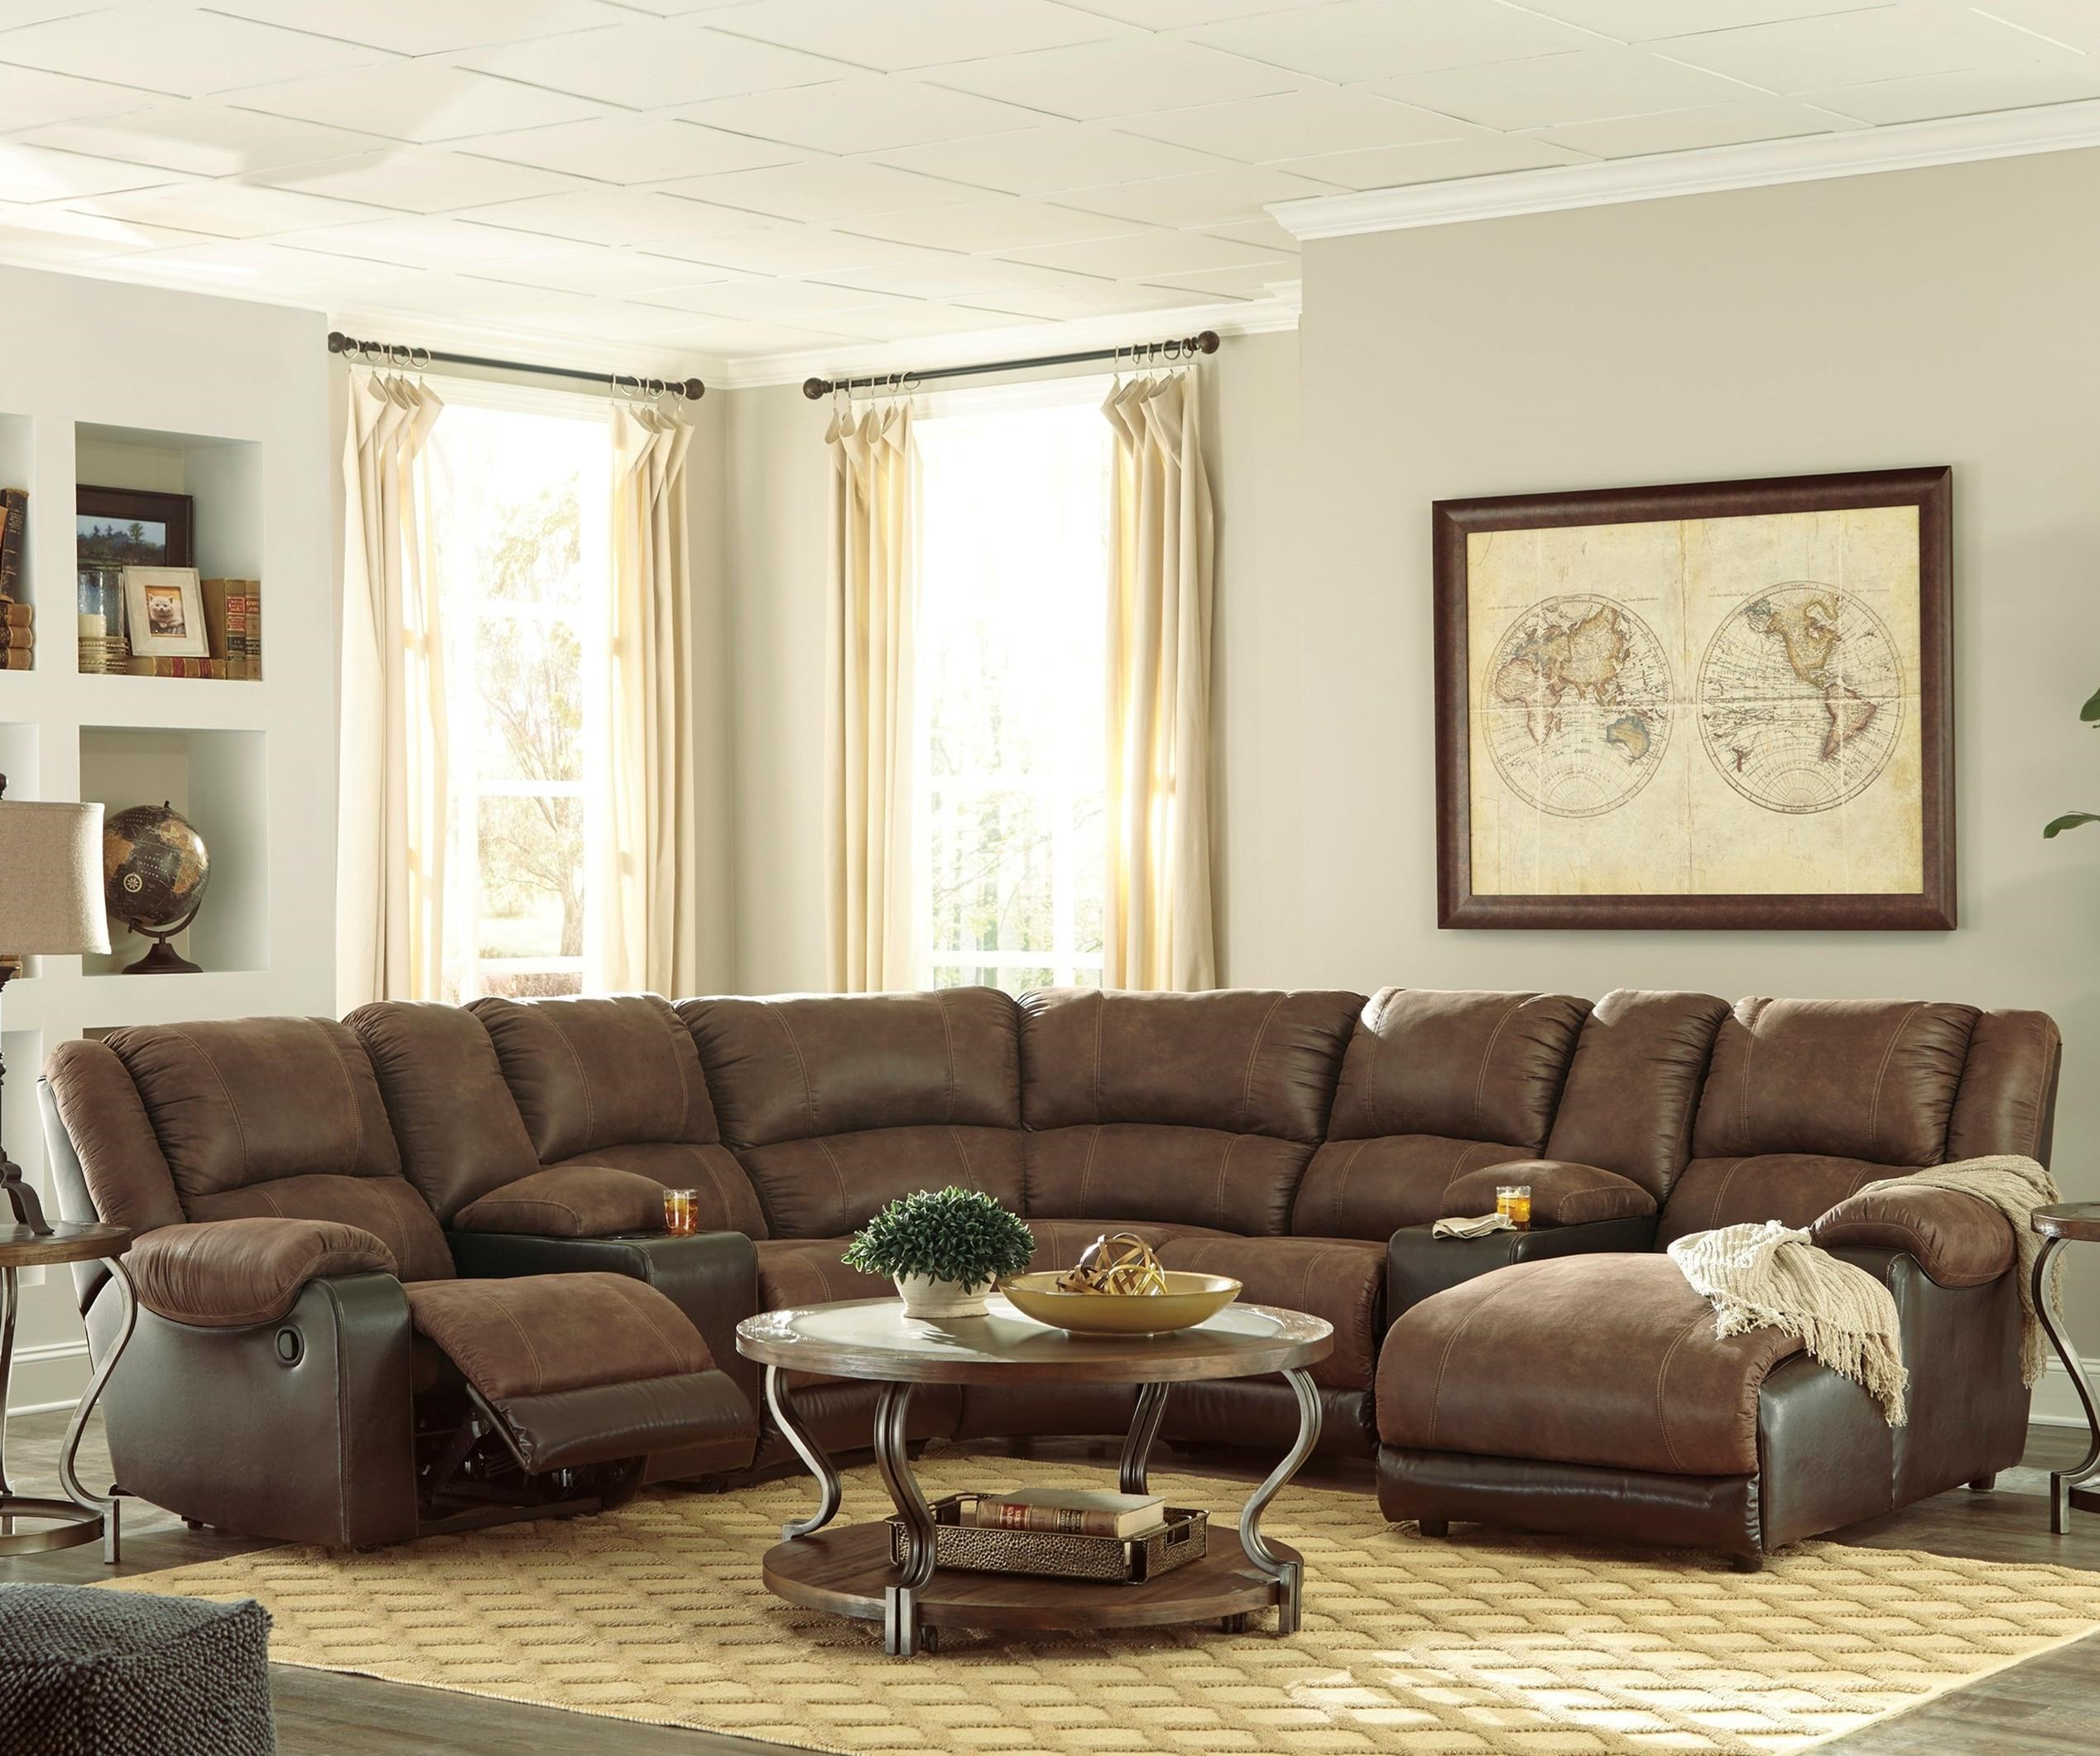 Signature Design by Ashley Nantahala Faux Leather Reclining Sectional with 2 Consoles u0026 Chaise  sc 1 st  Value City Furniture & Signature Design by Ashley Nantahala Faux Leather Reclining ... islam-shia.org